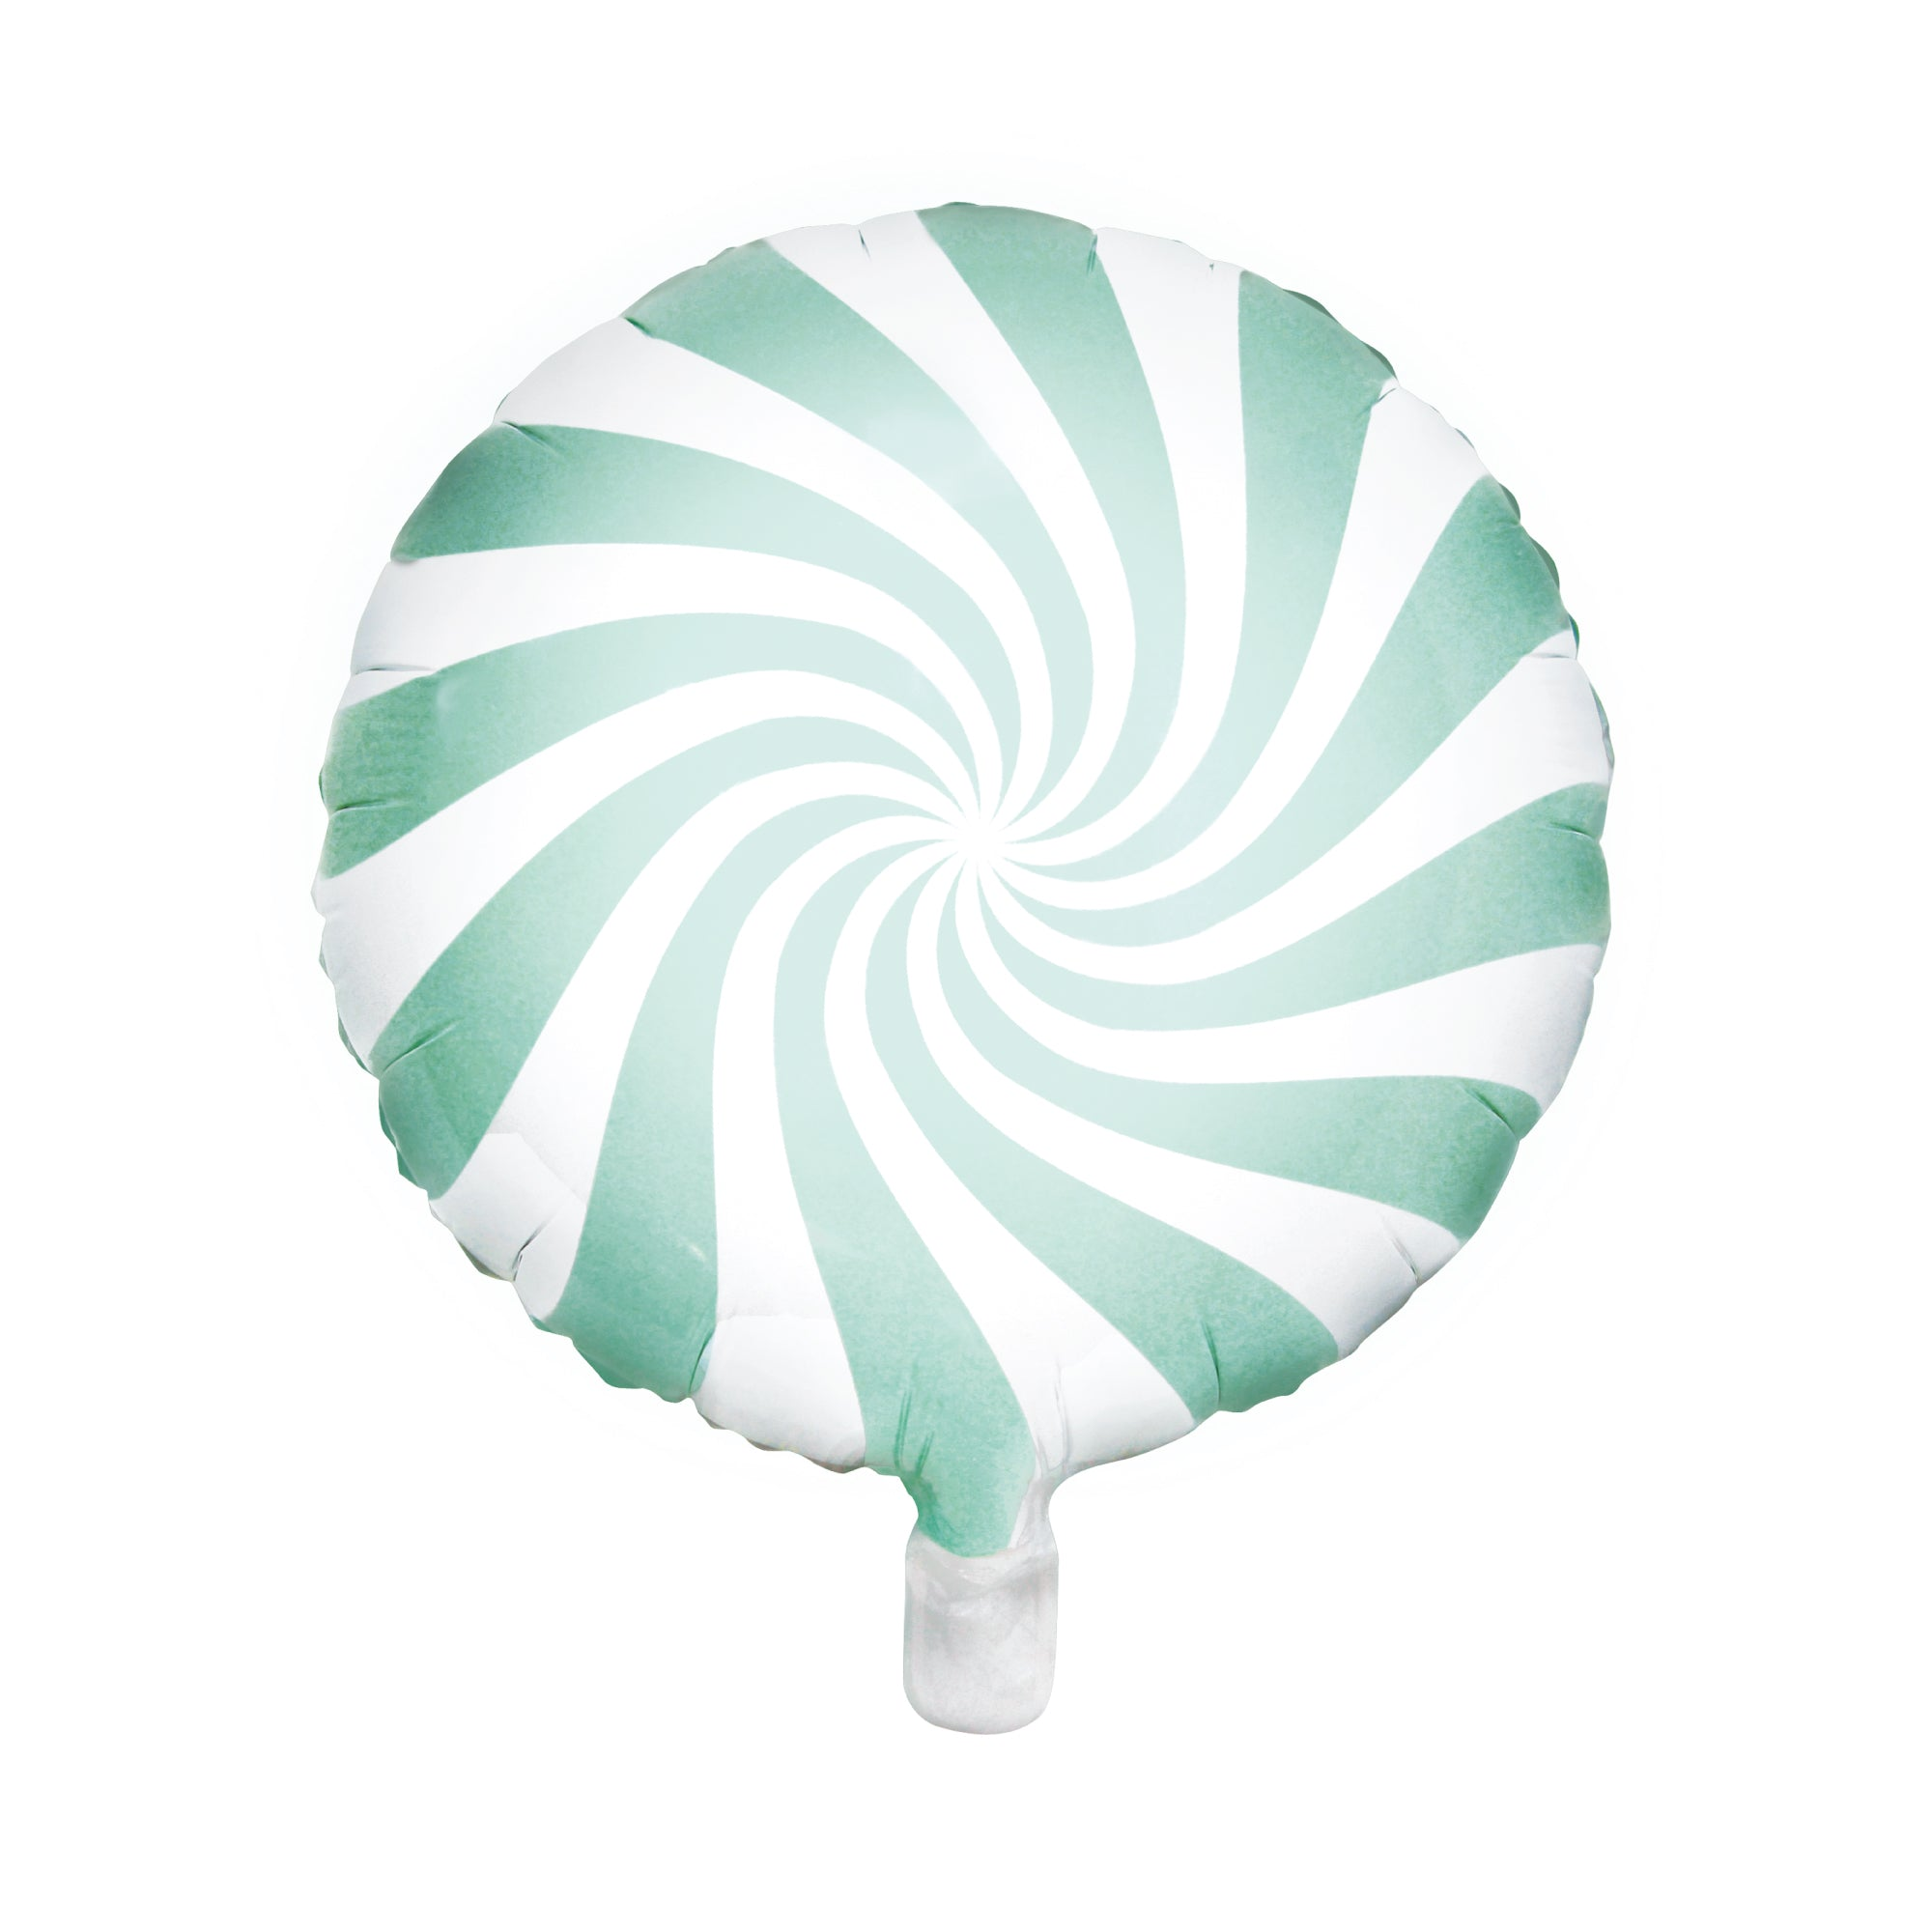 Mint Green Swirly Lollipop Foil Balloon 18"